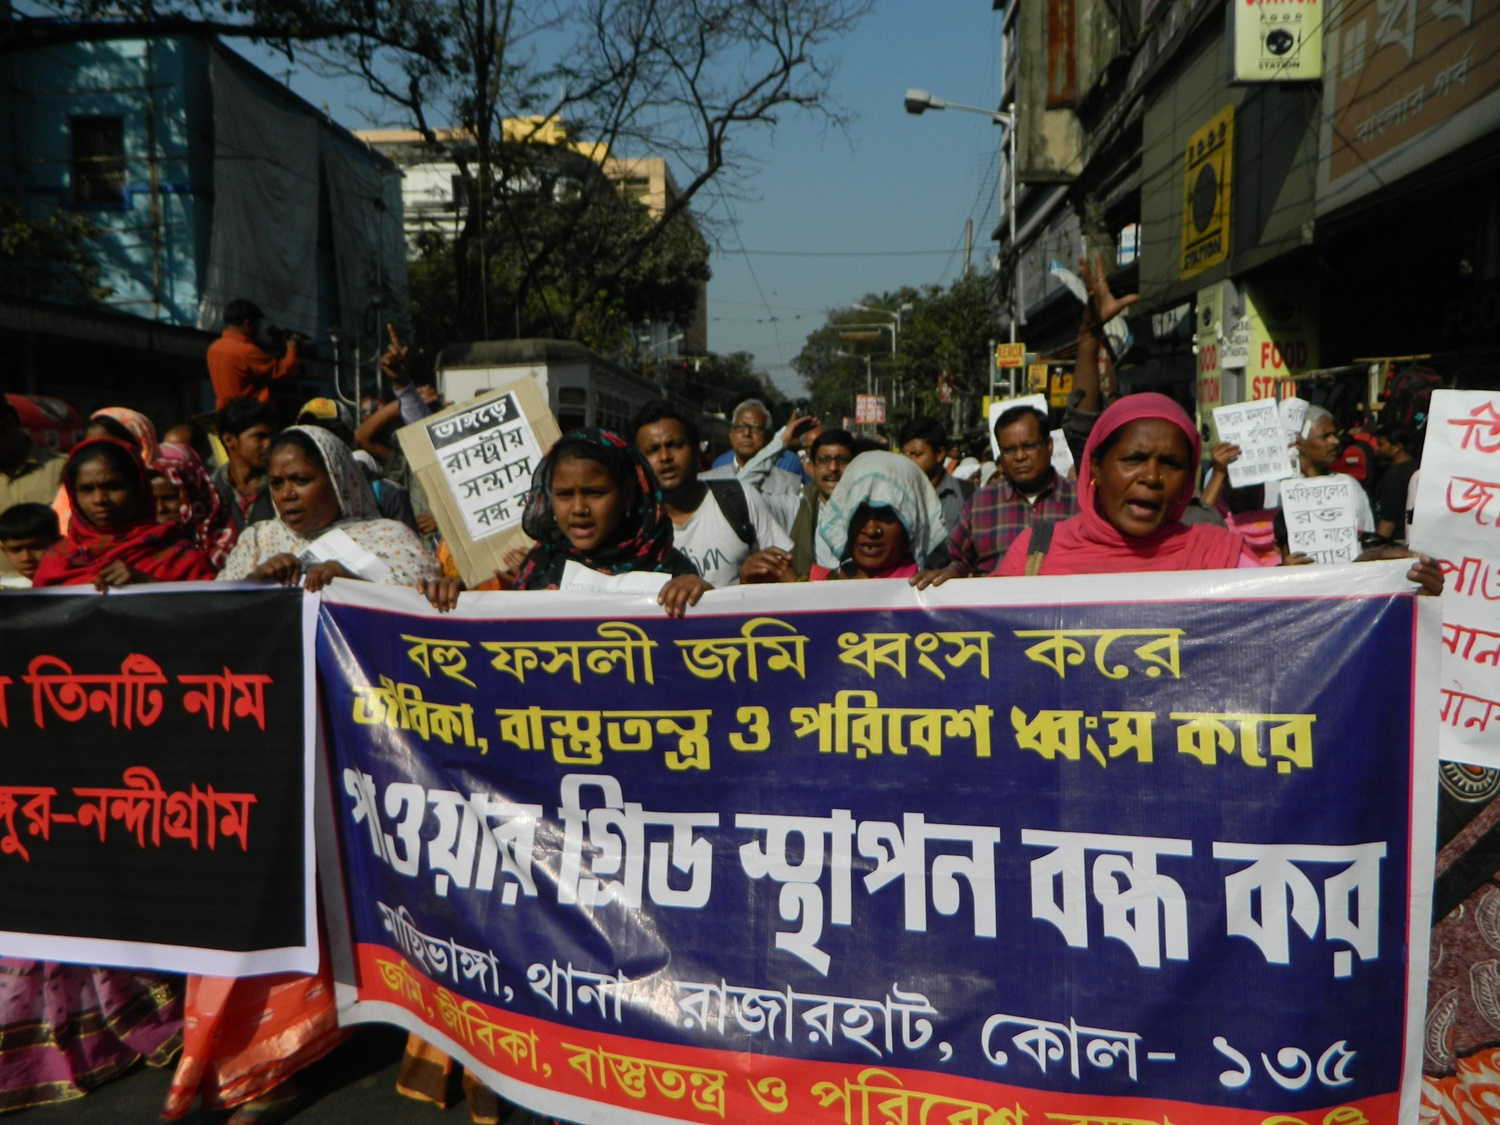 Residents of villages of Bhangar protesting against the upcoming power substation on their agricultural land on January 30, 2017 in Kolkata. Credit: Suchitra M.